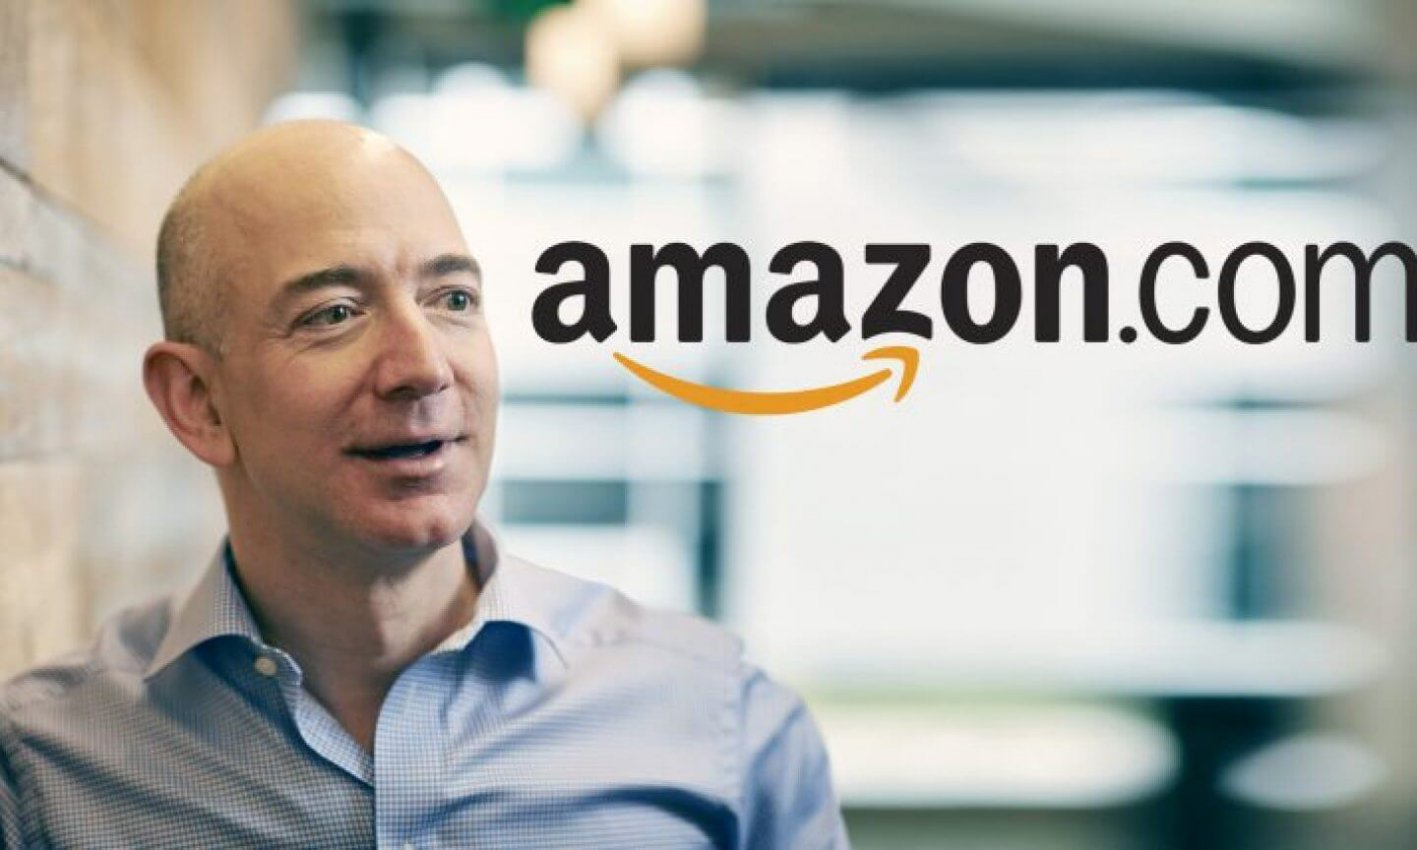 jeff-bezos-amazon-1440x864_c